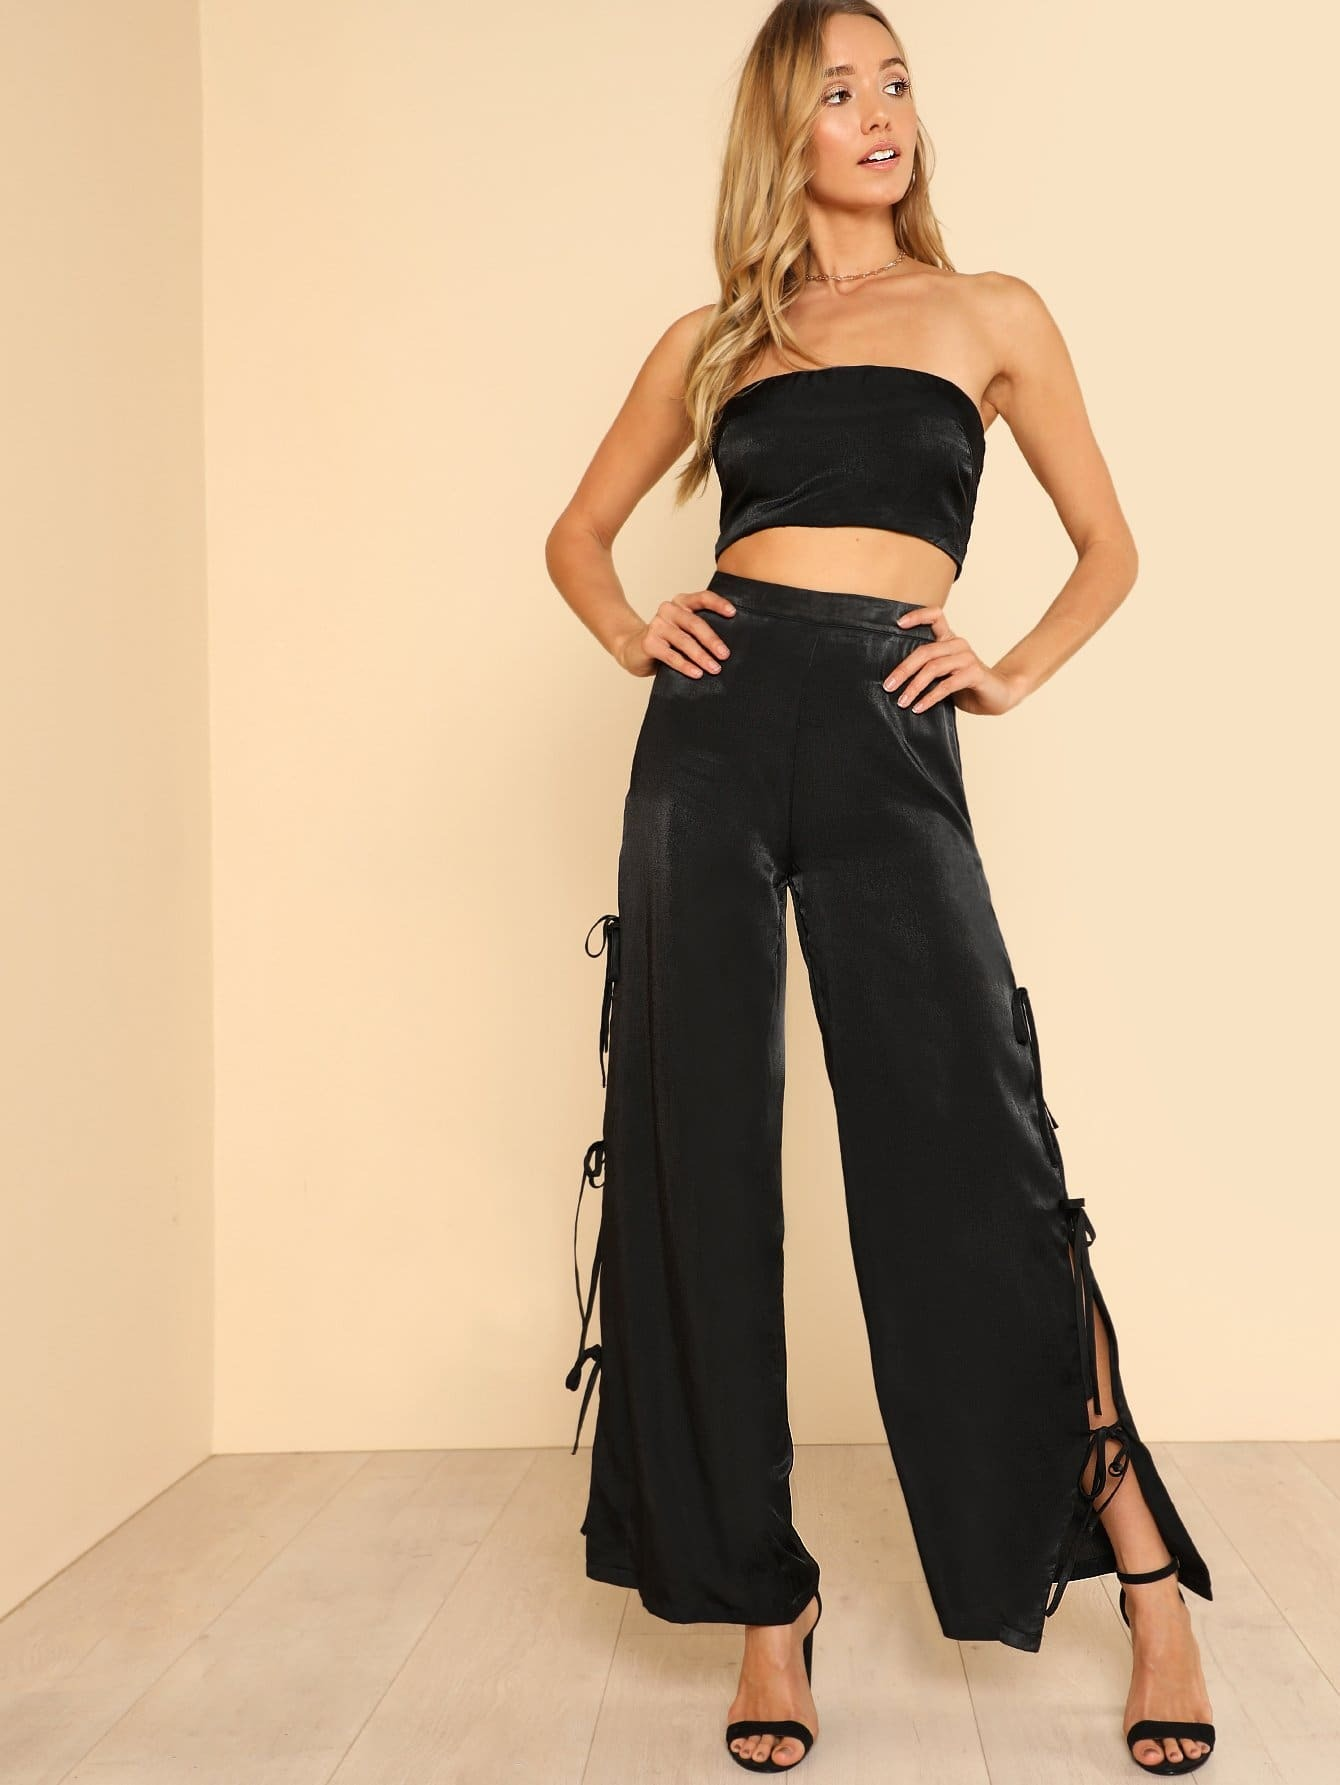 Satin Bandeau Top & Tie Side Wide Leg Pants Set bow tie side wide leg pants